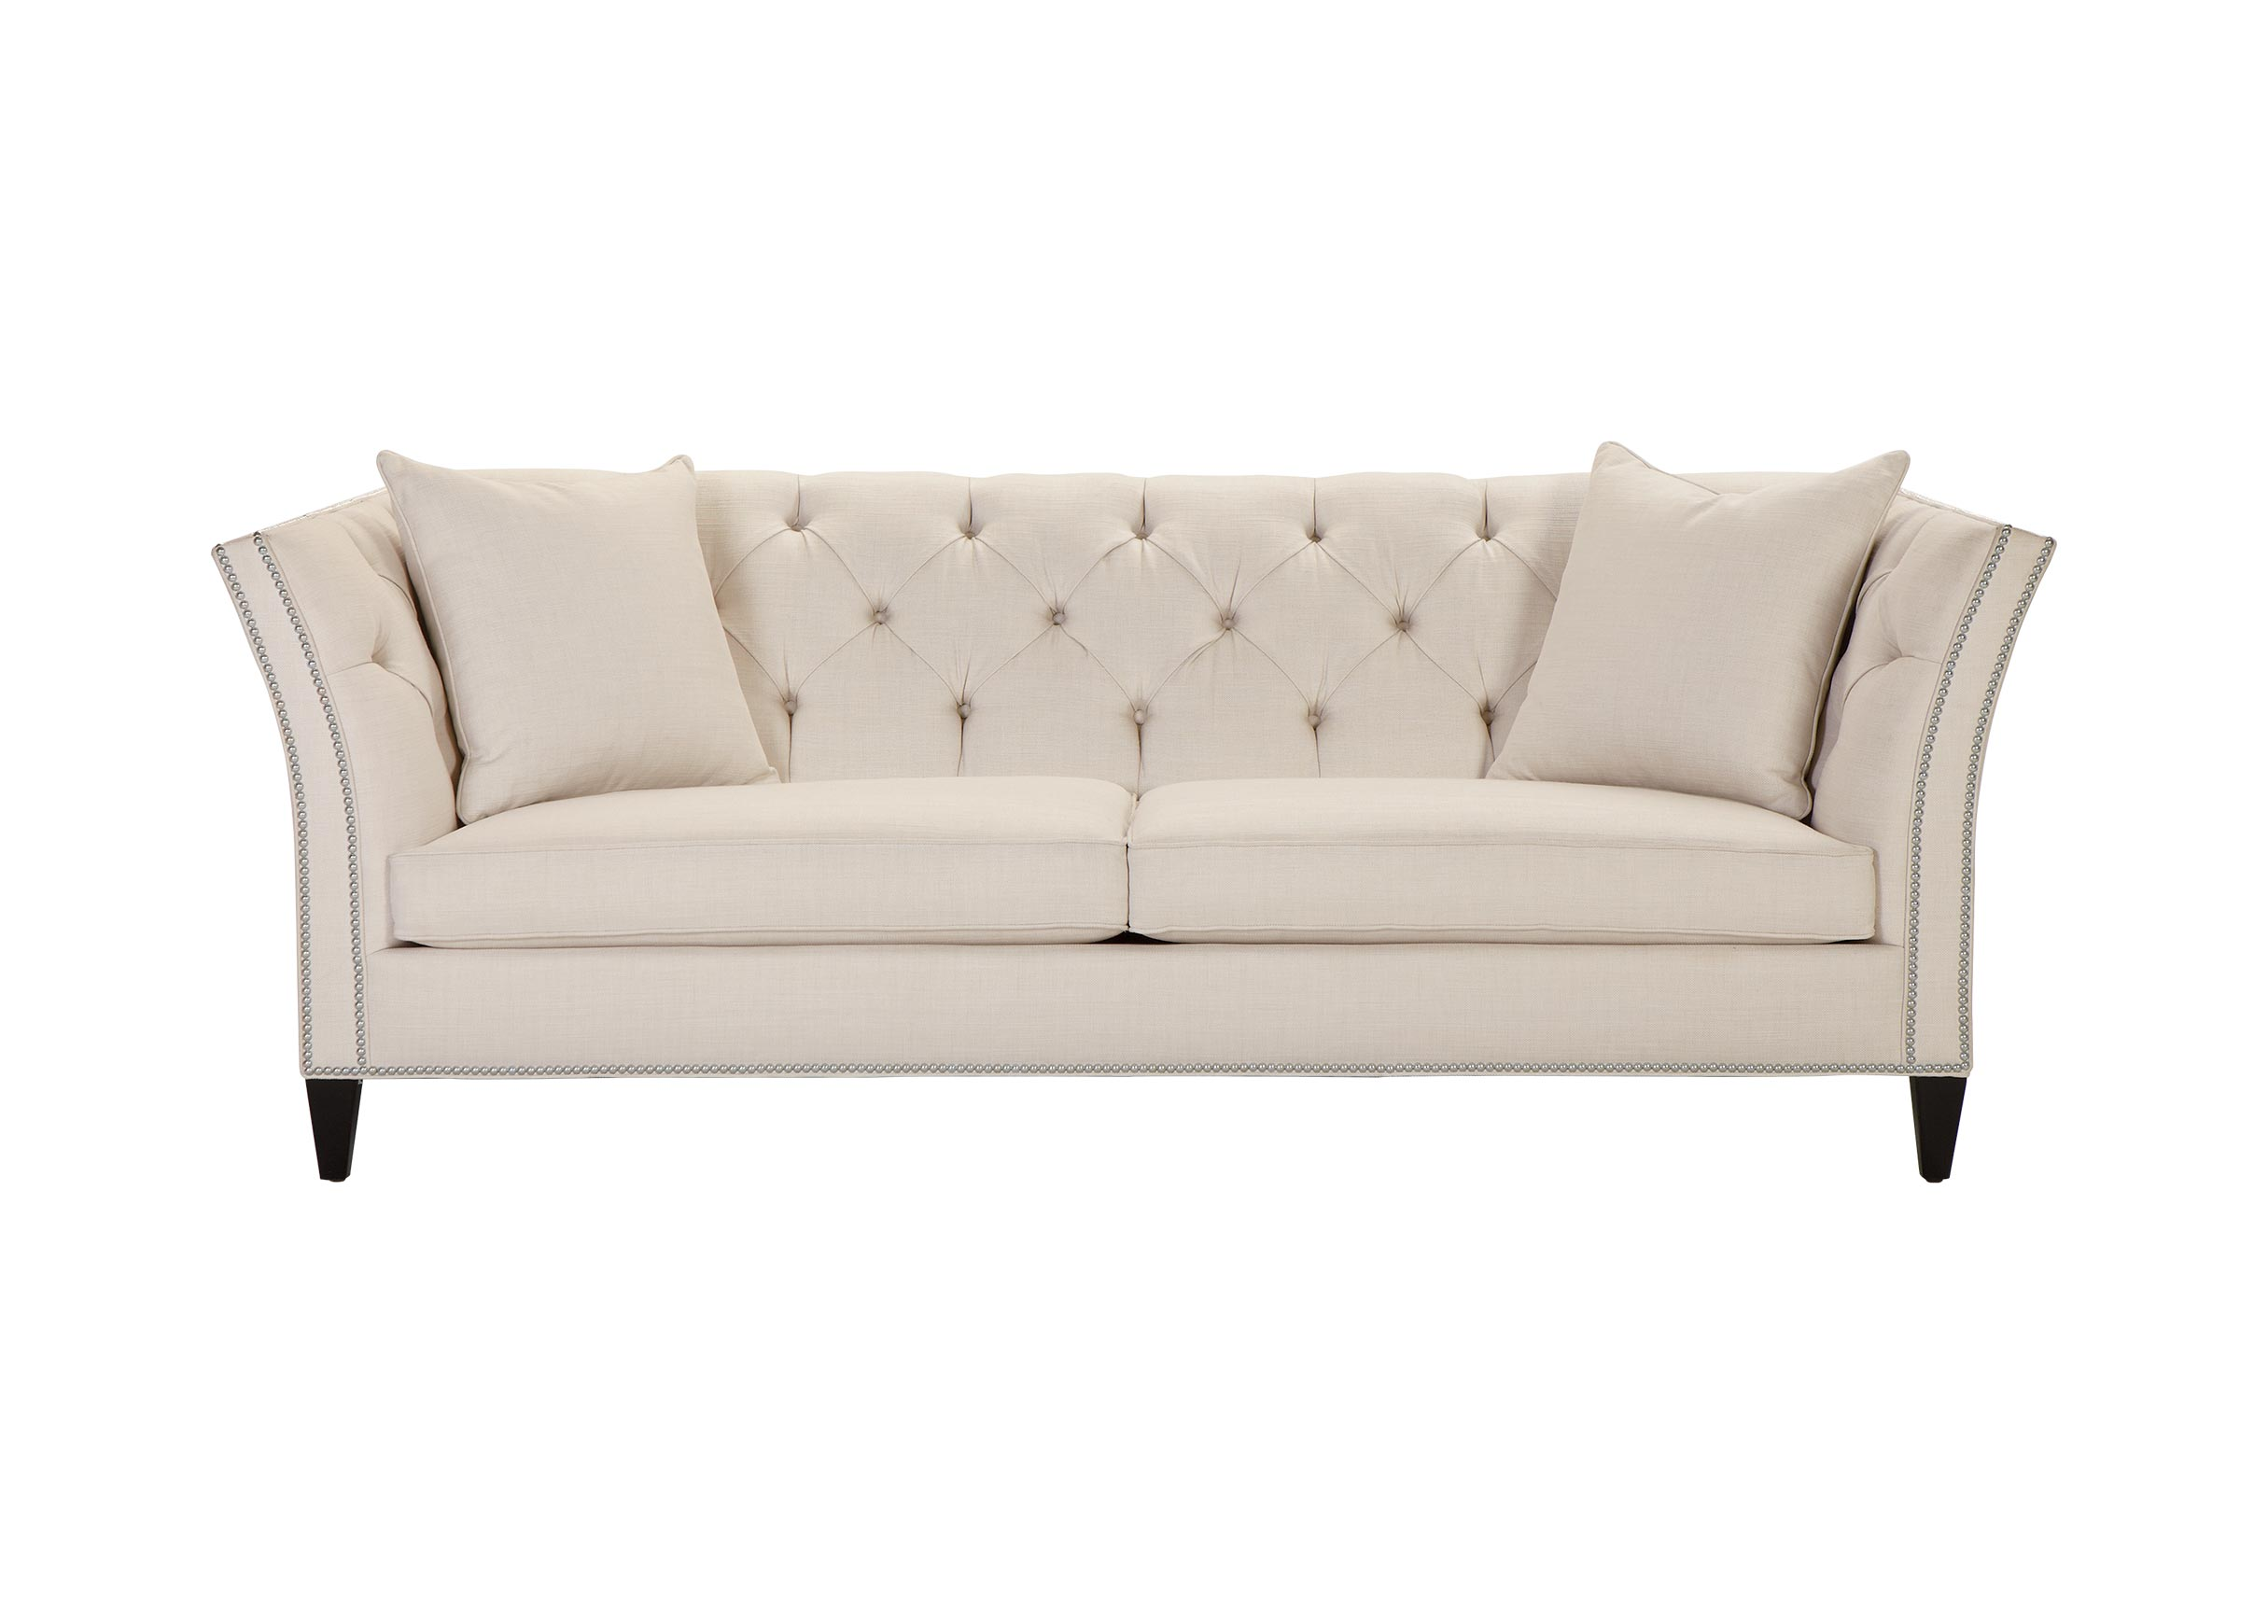 Shelton sofa sofas loveseats ethan allen for Ethan allen furniture